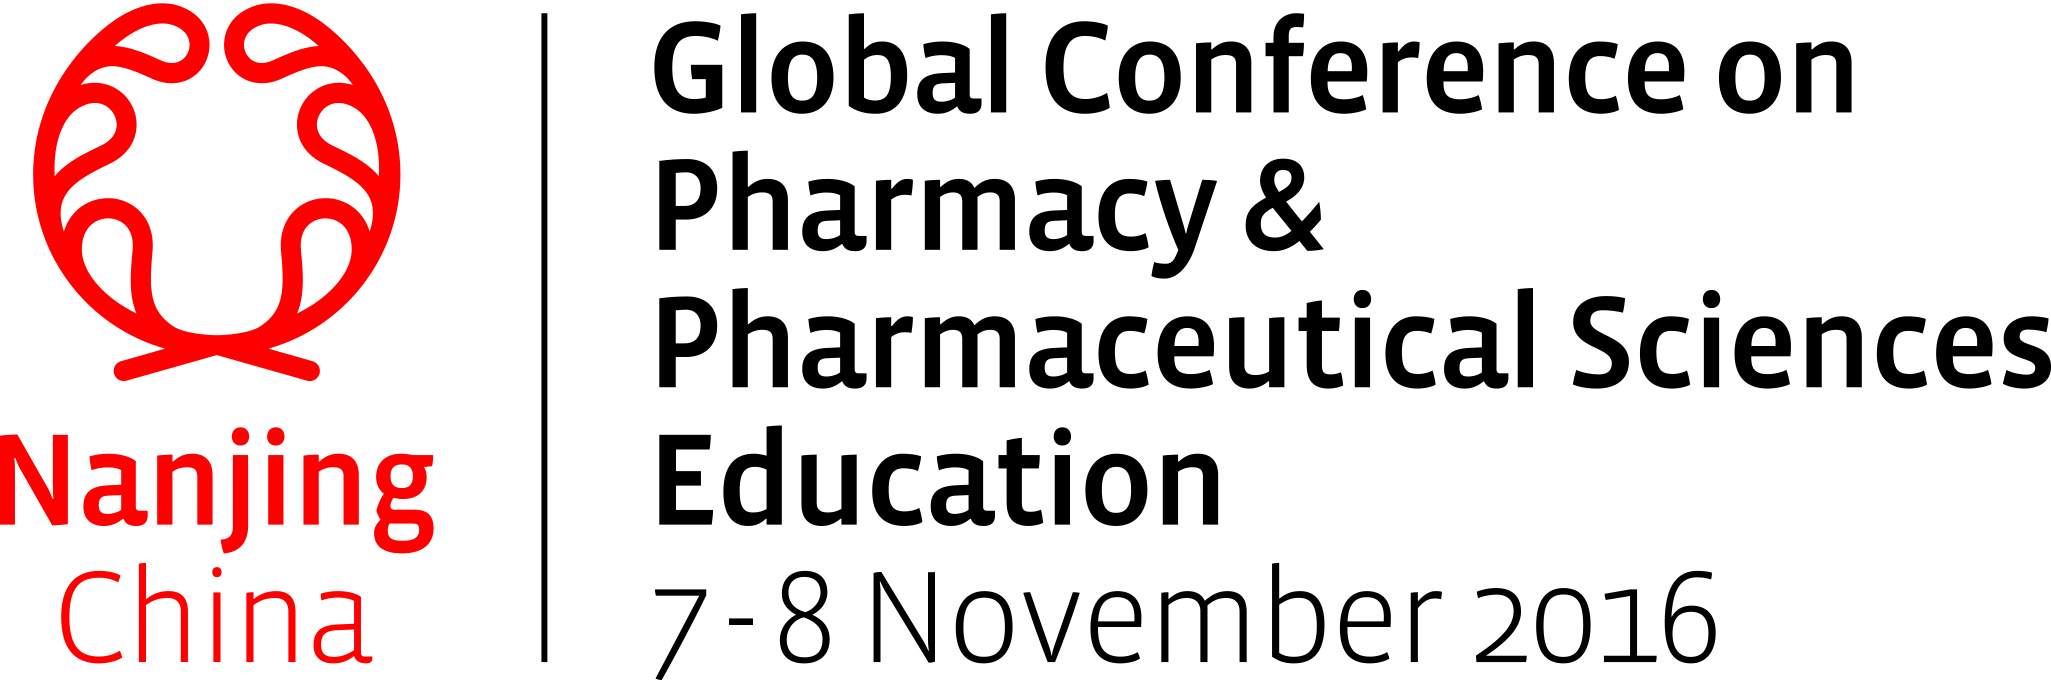 Conference logo of Global Conference on Pharmacy and Pharmaceutical Sciences Education, Nanjing 2016